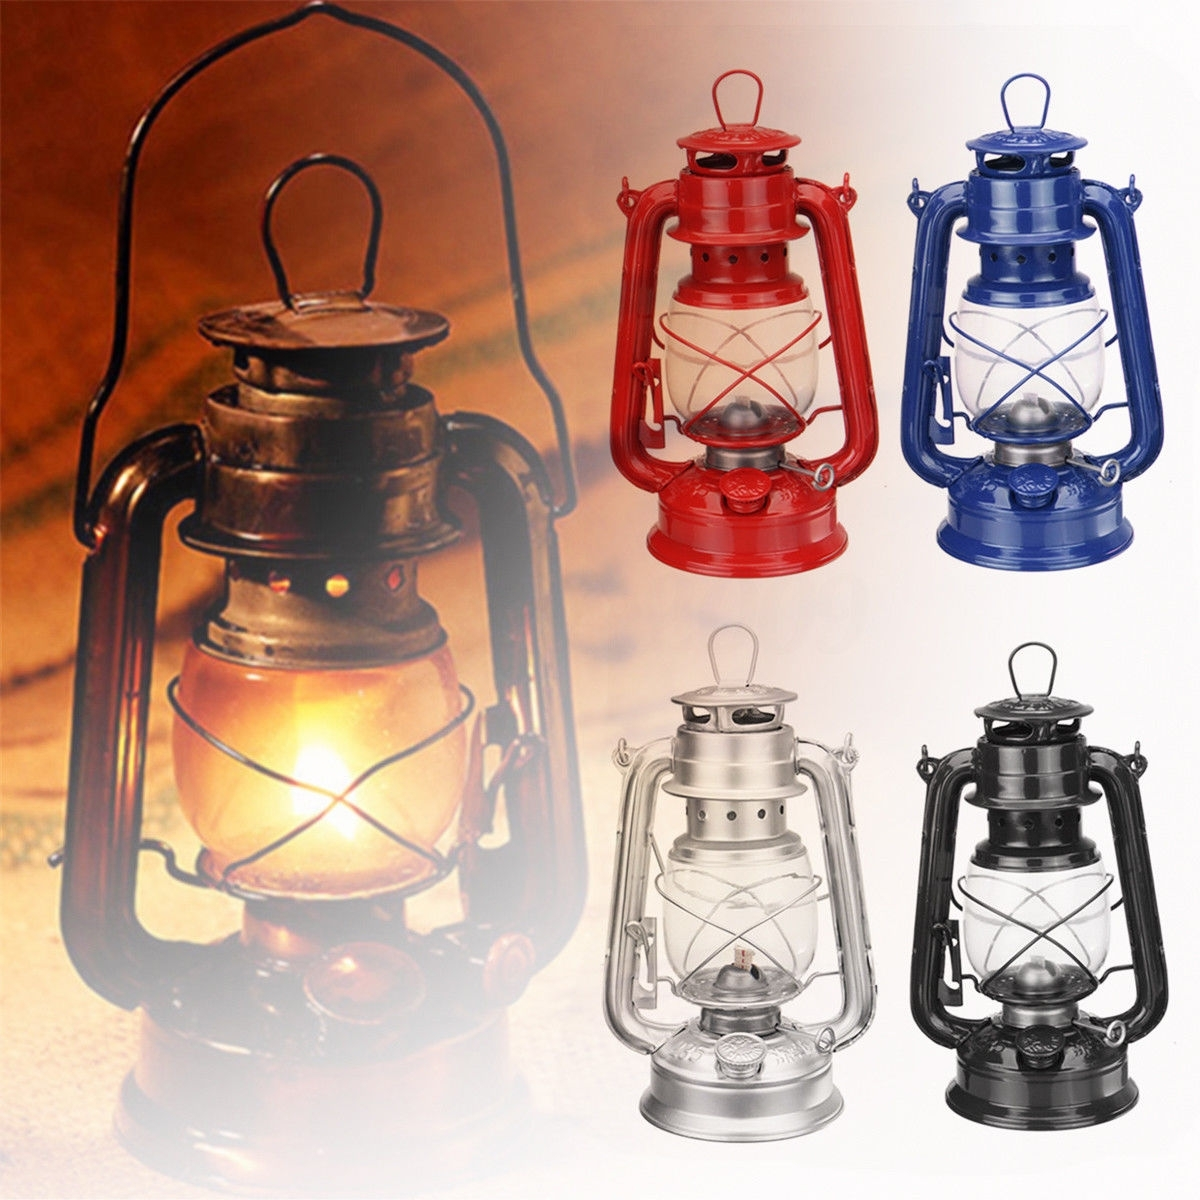 Military Oil Lamp Lantern Kerosene Paraffin Hurricane Lamp Light pertaining to Outdoor Kerosene Lanterns (Image 15 of 20)